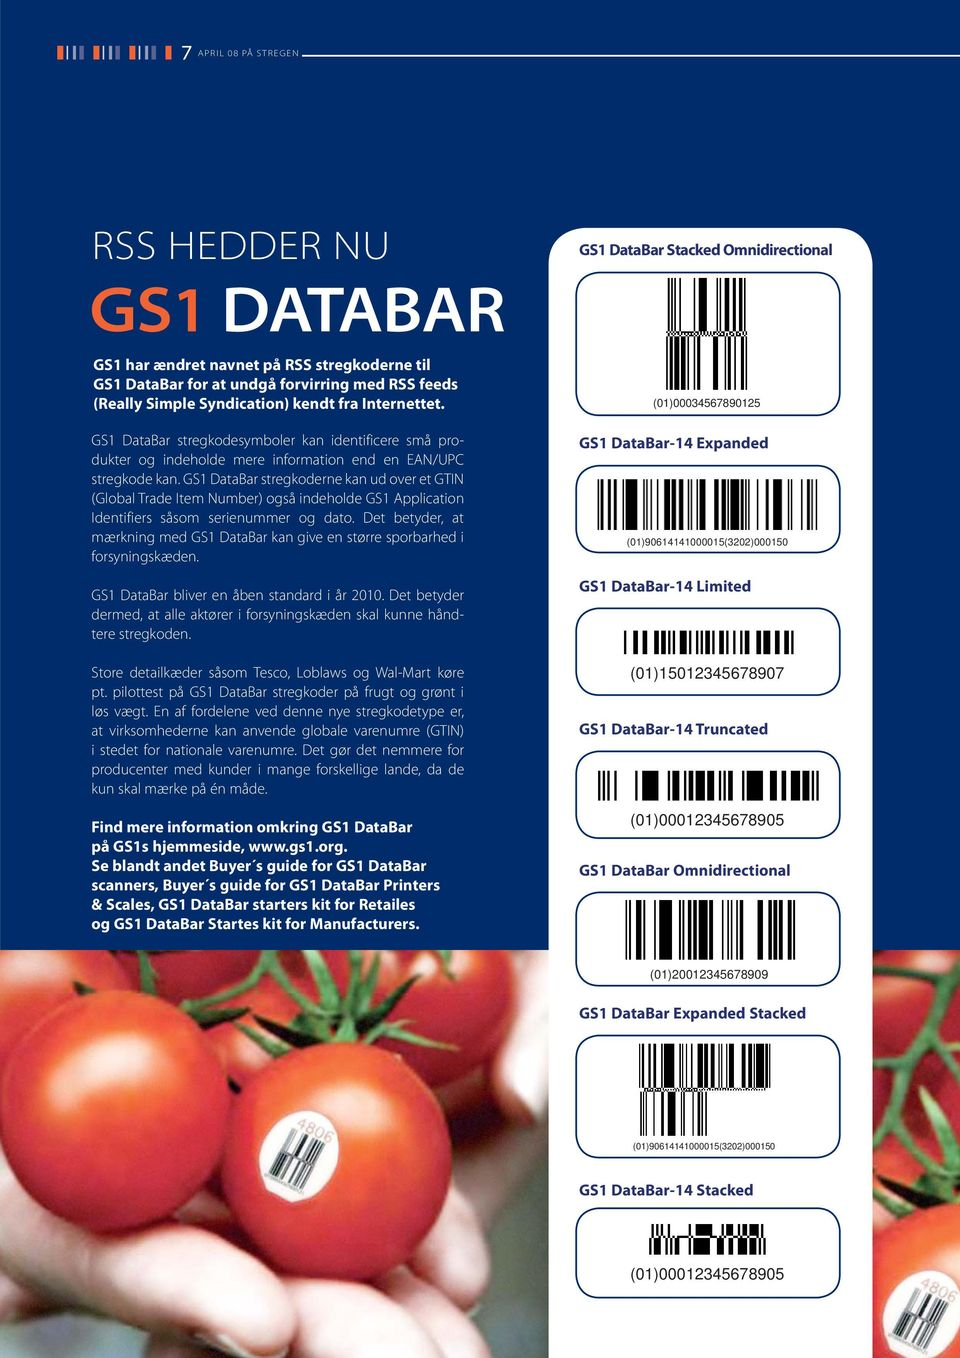 GS1 DataBar stregkoderne kan ud over et GTIN (Global Trade Item Number) også indeholde GS1 Application Identifiers såsom serienummer og dato.